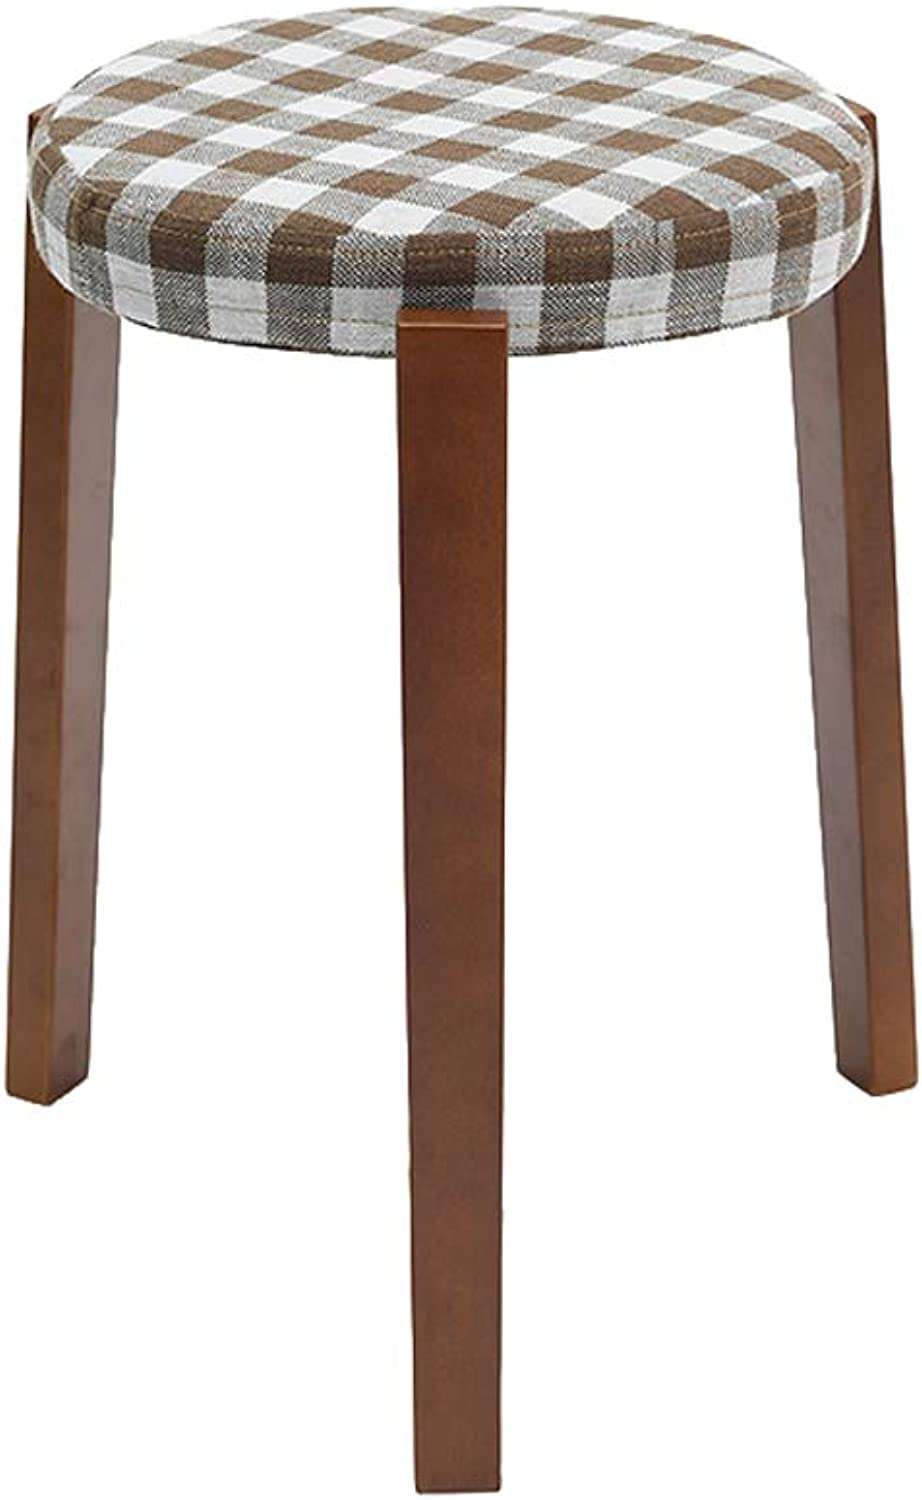 Table Stool, Bedroom Linen Cloth Solid Wood Footstools Dining Table Study Desk Dressing Bench Change shoes Stool (color   Lattice)